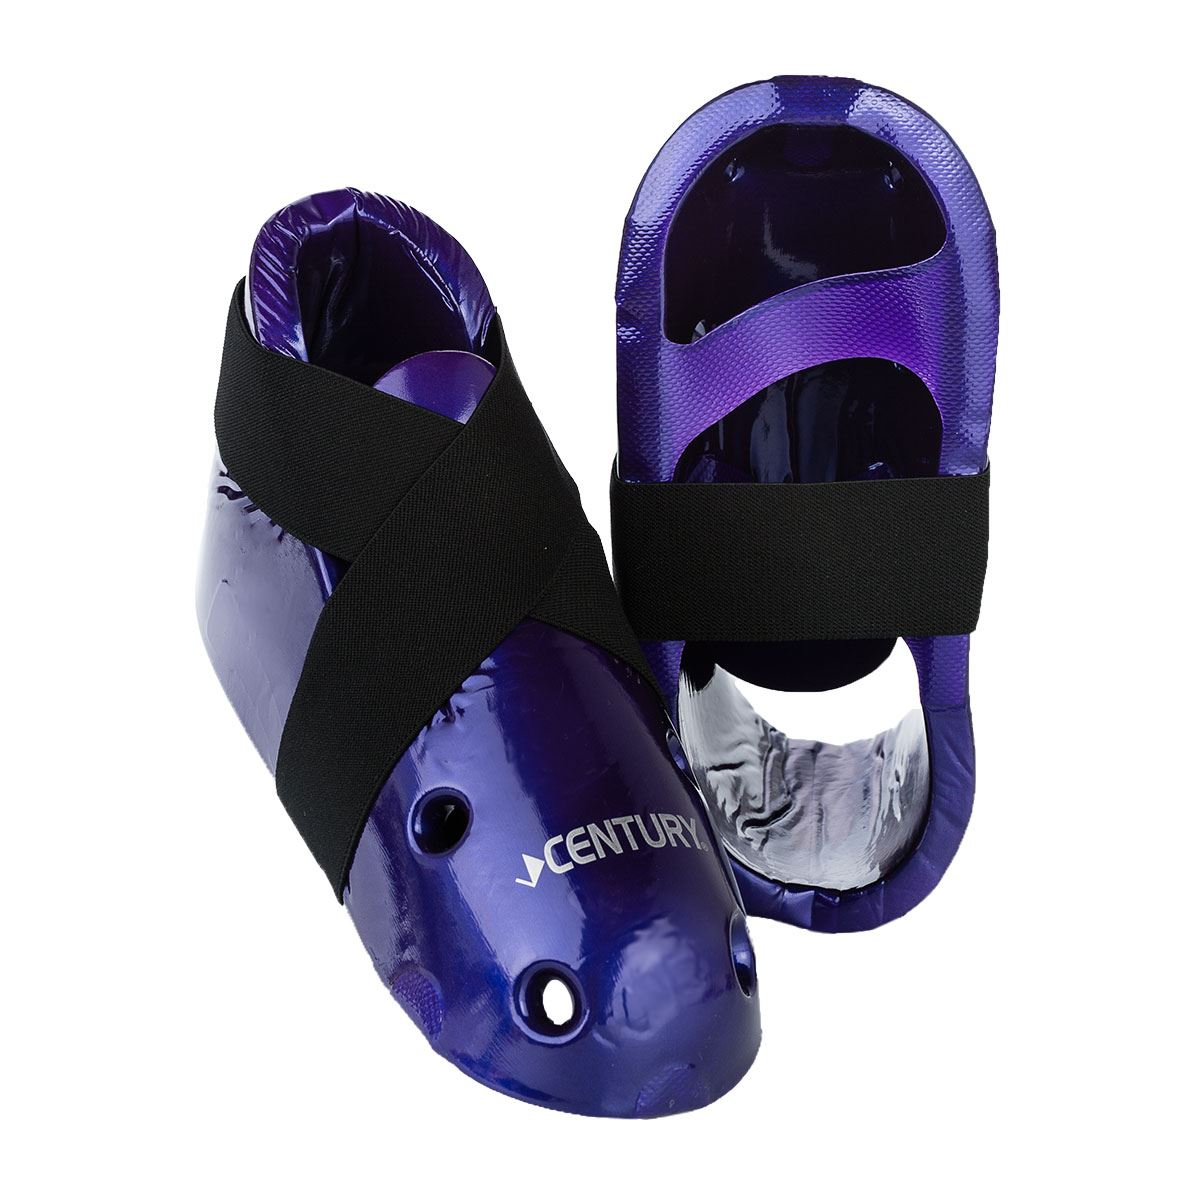 8c1bc13289c Home   Sparring Gear   Foot Gear   Purple Student Sparring Boots